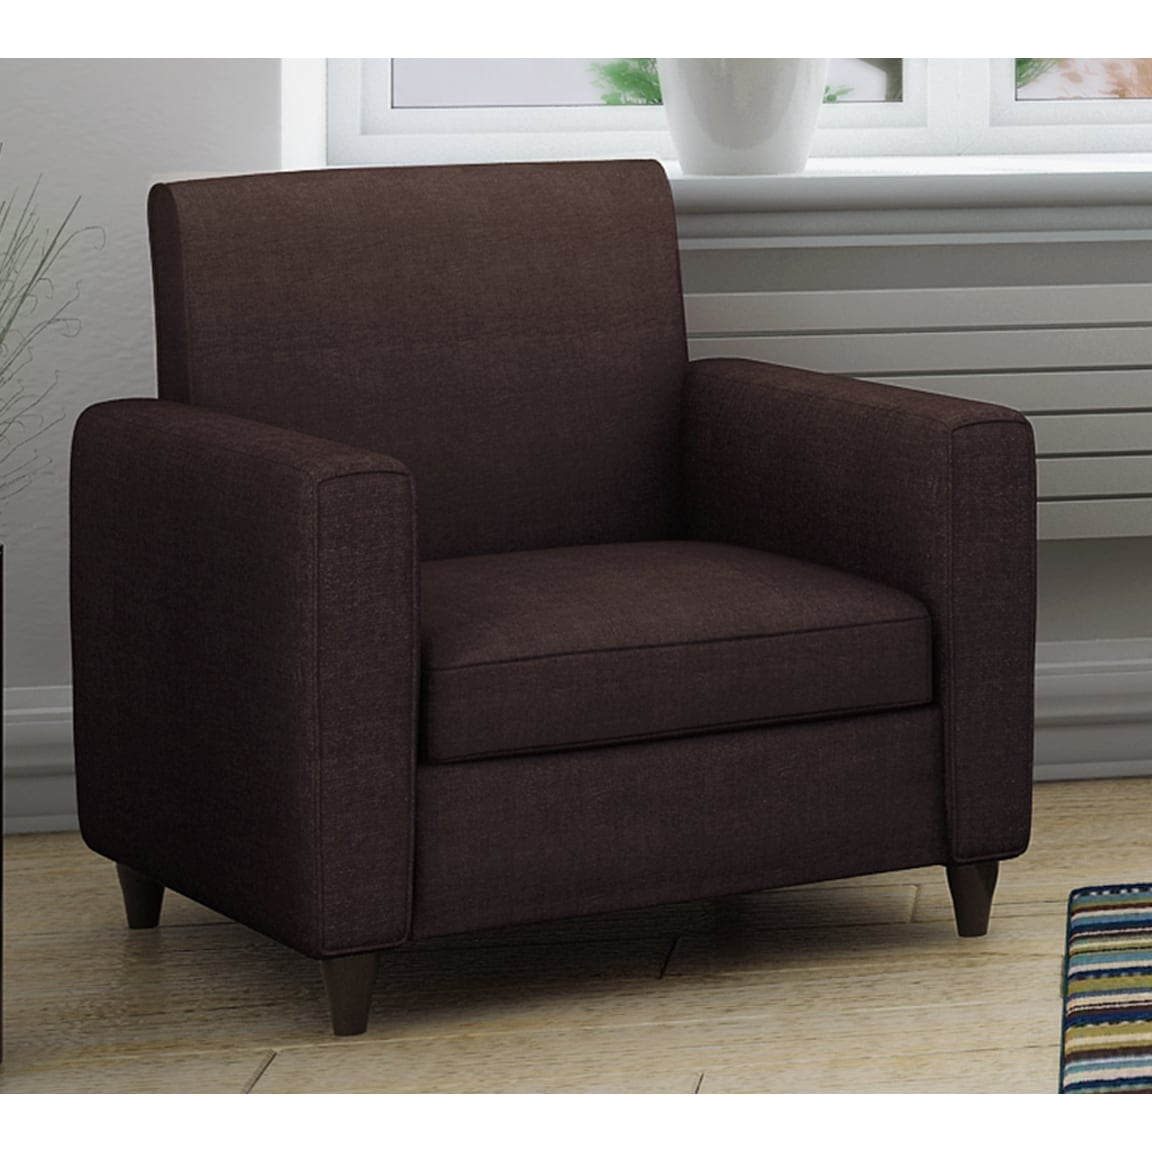 Shop Enzo Solid Colored Accent Chair Free Shipping On